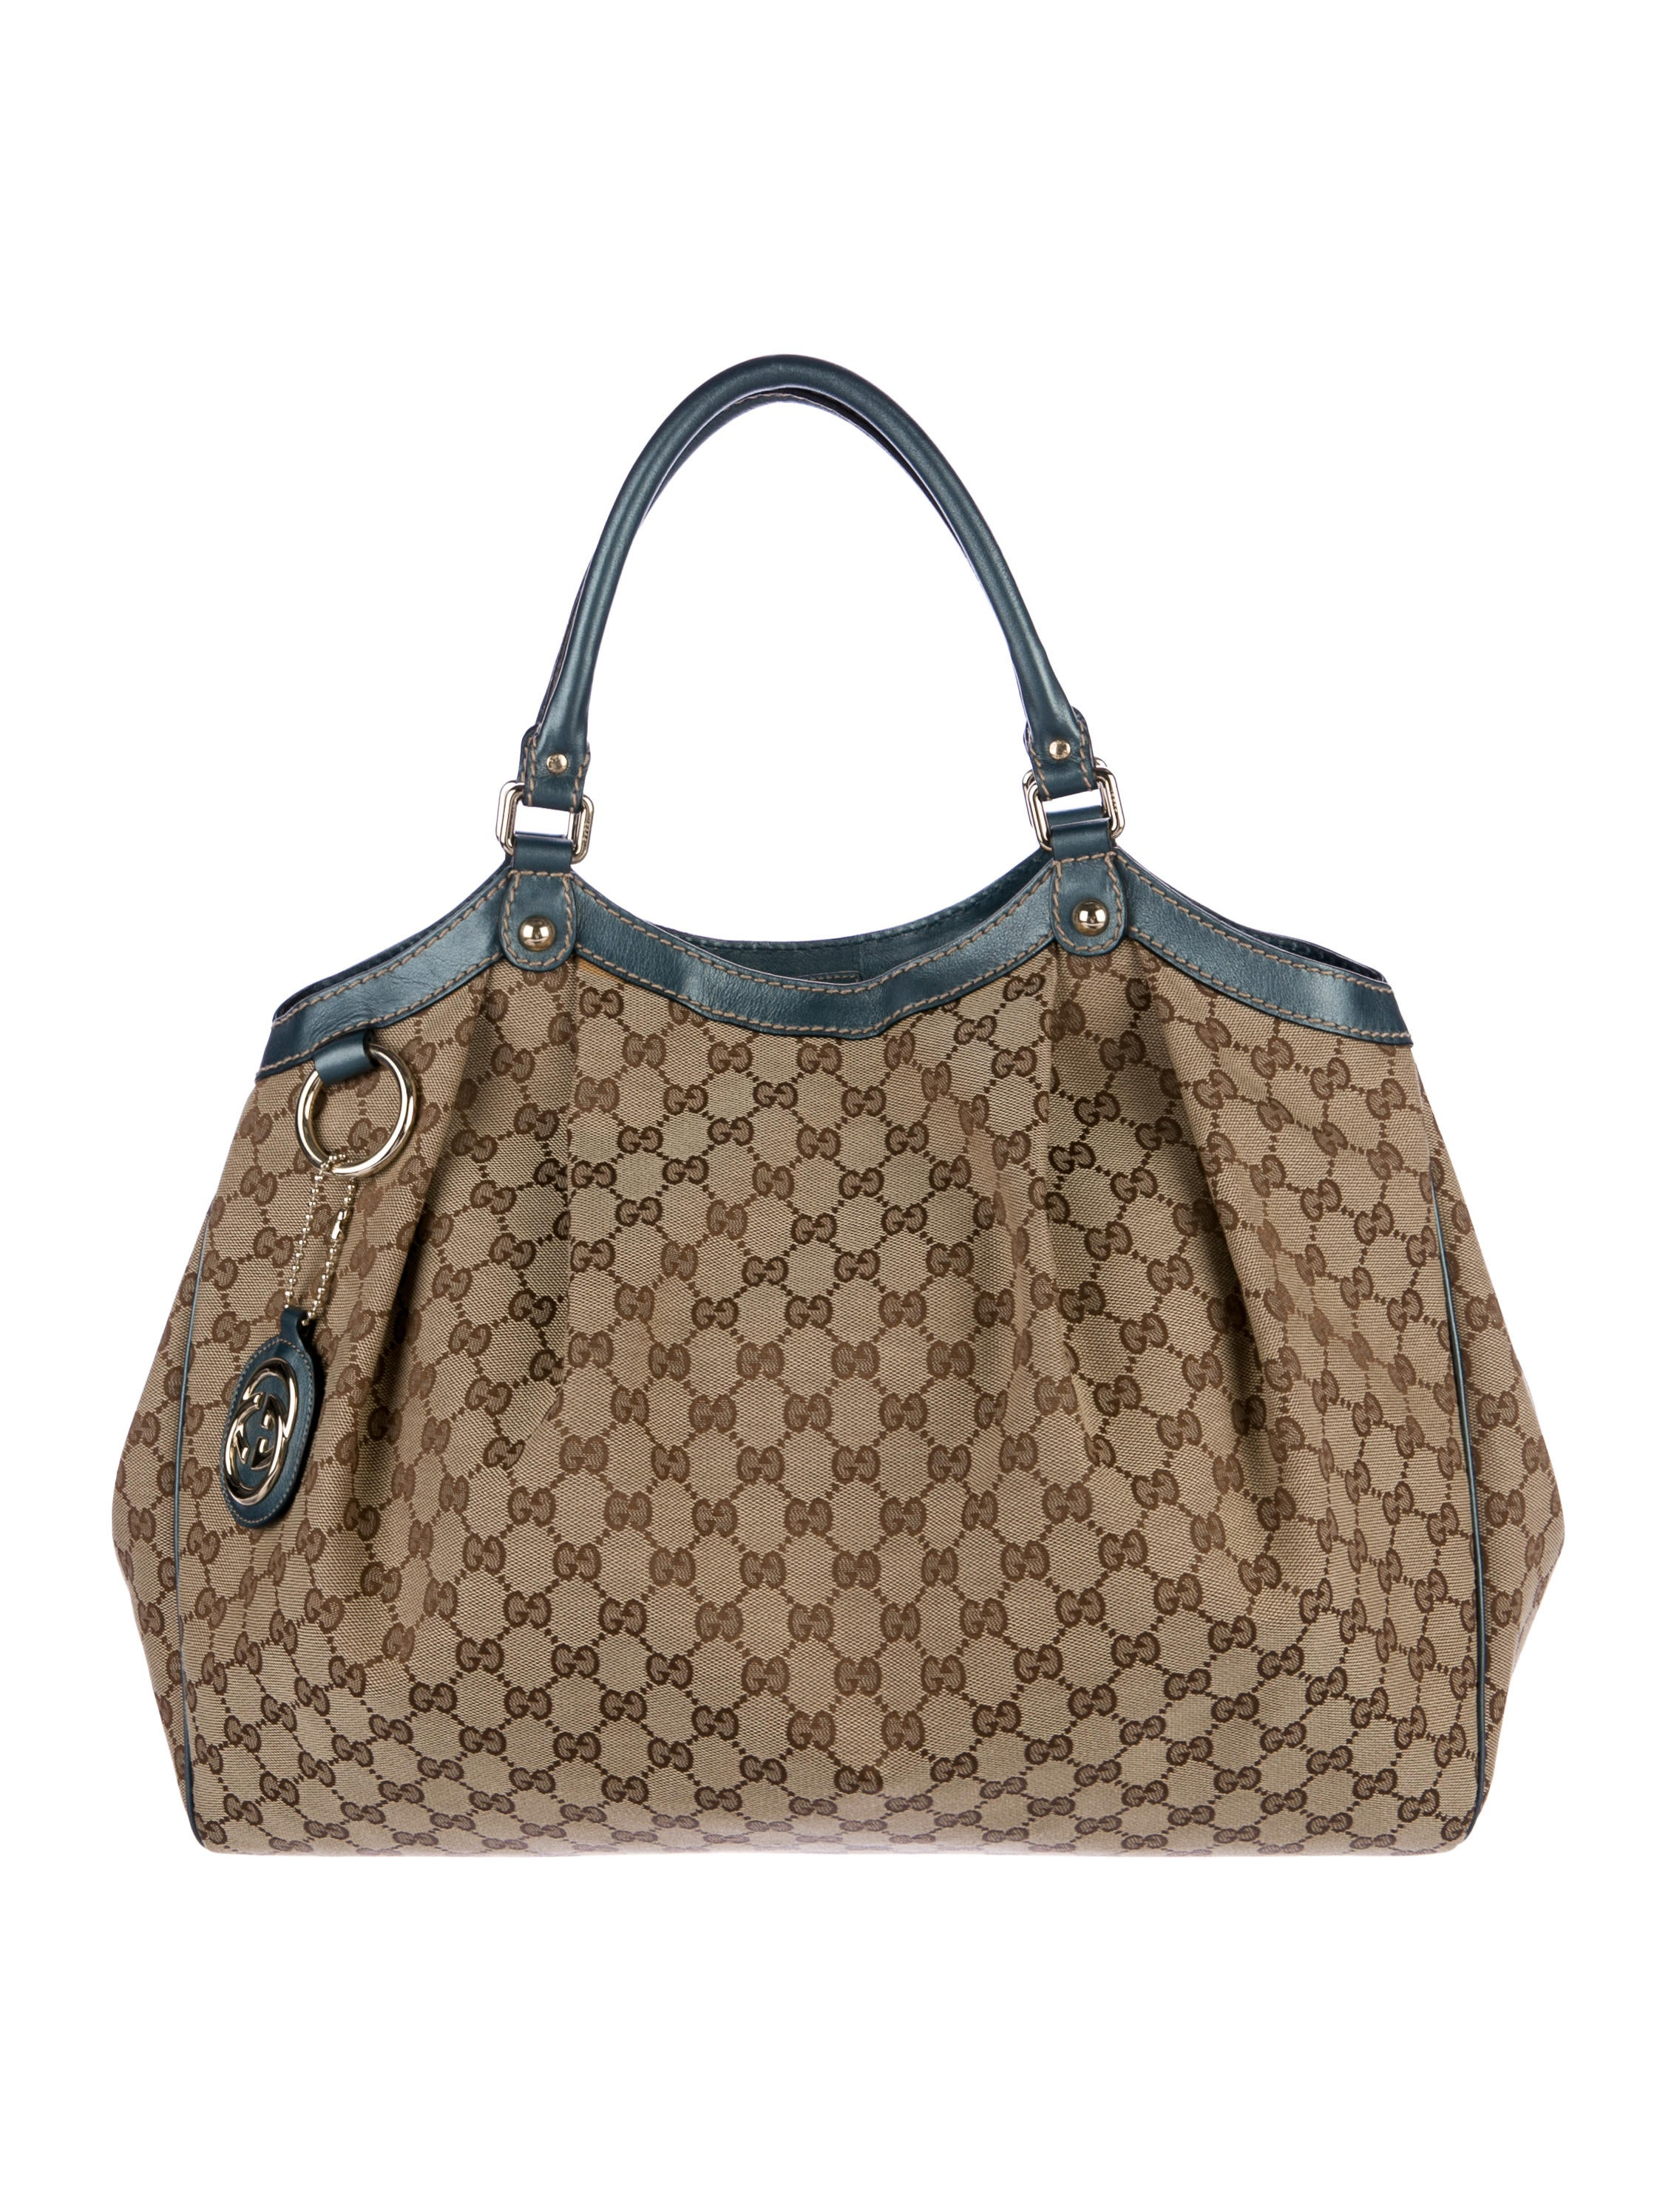 f0d990033785 Gucci Sukey Large Tote Bags | Stanford Center for Opportunity Policy ...